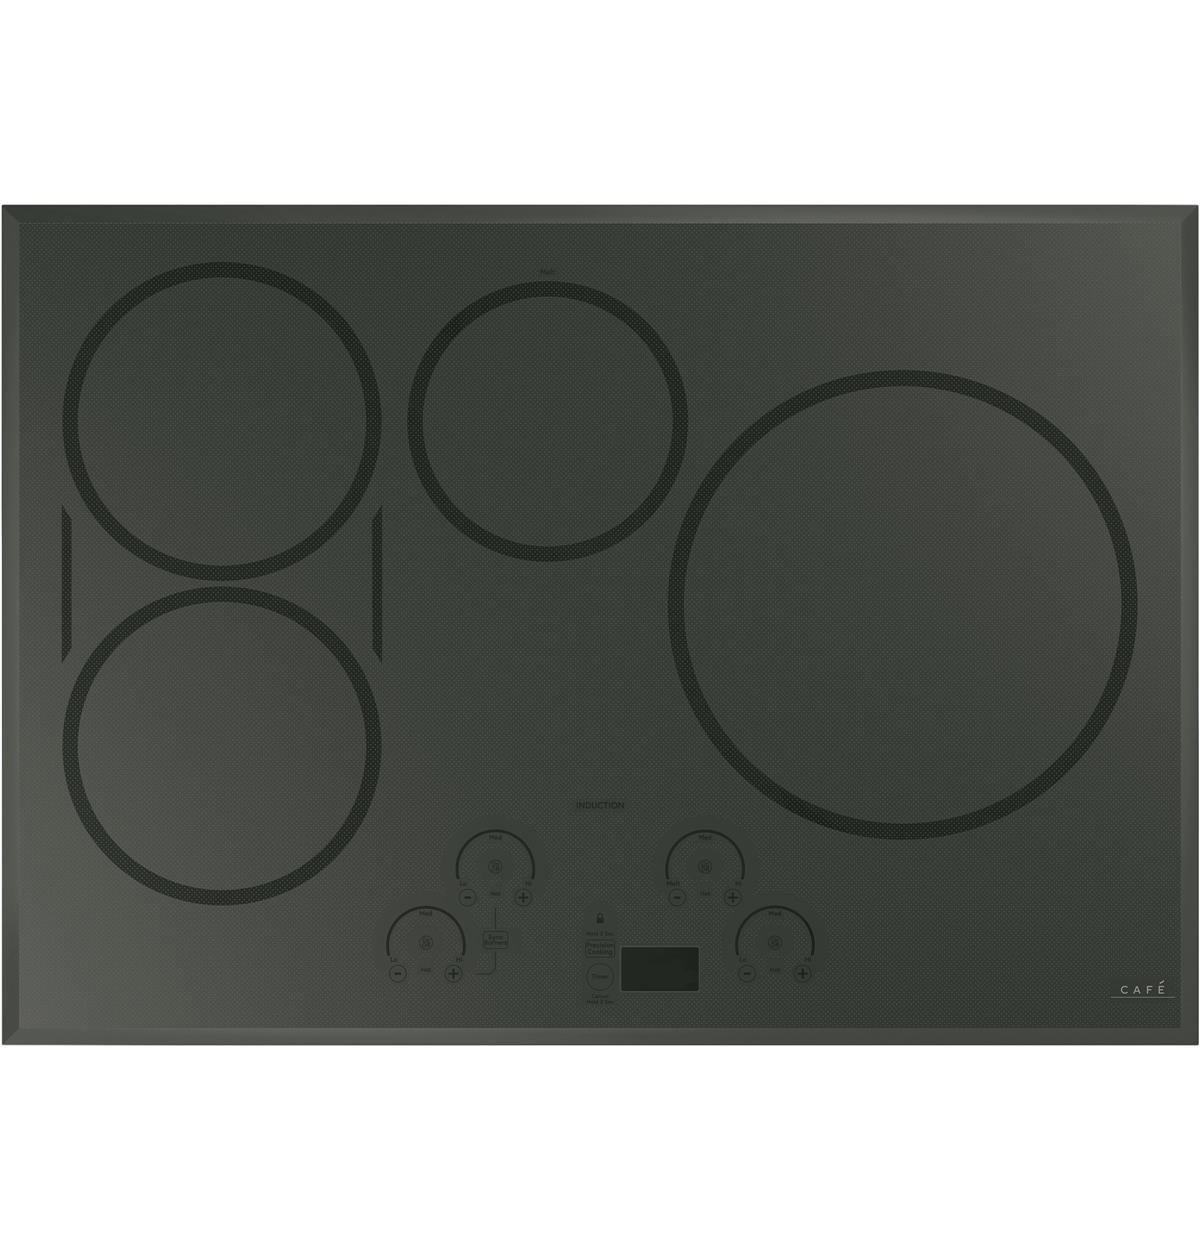 "Café™ 30"" Built-In Touch Control Induction Cooktop"